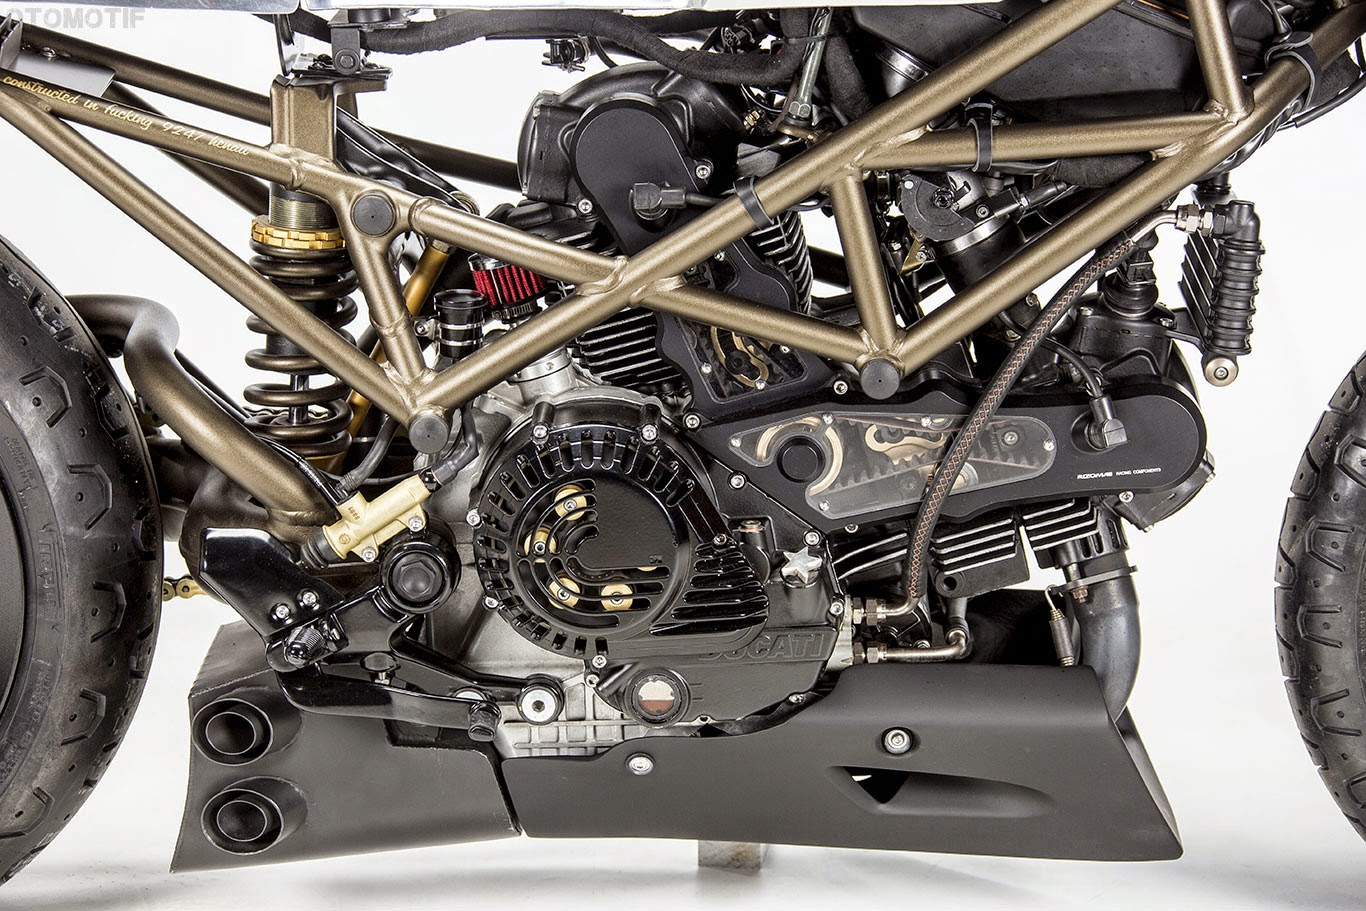 Ducati Monster Cafe Racer